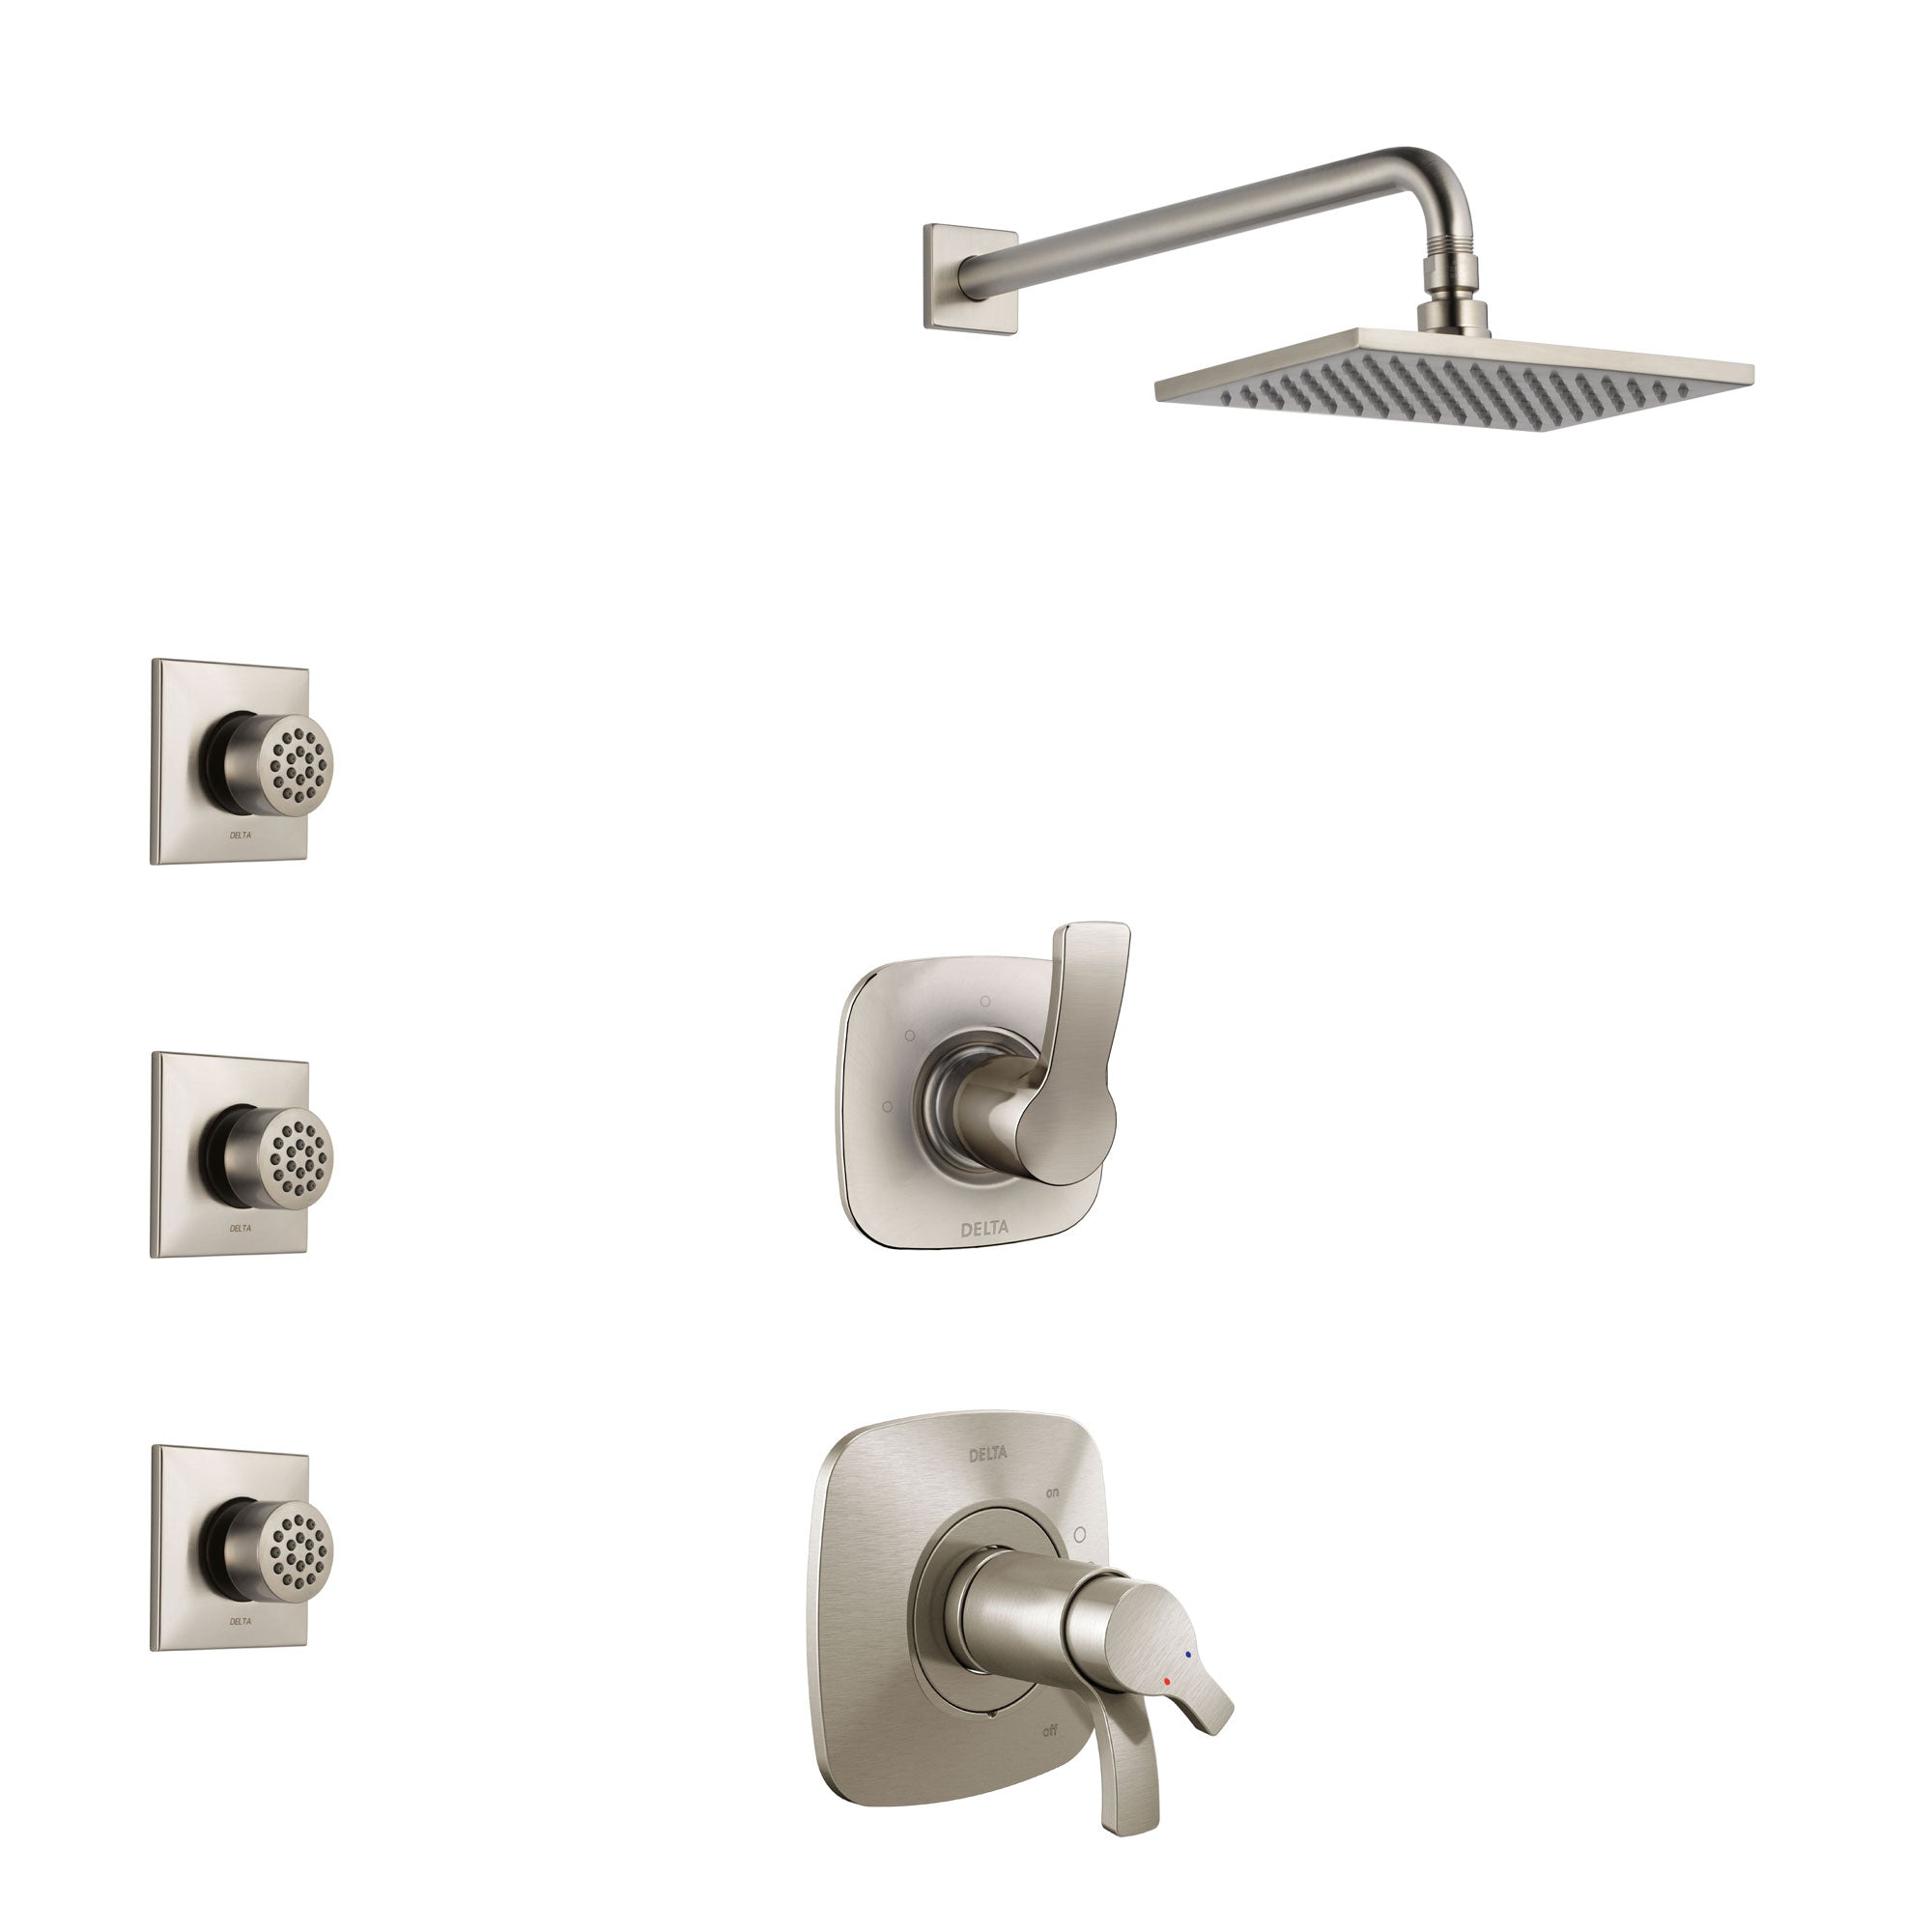 Delta Tesla Stainless Steel Finish Shower System with Dual Thermostatic Control Handle, 3-Setting Diverter, Showerhead, and 3 Body Sprays SS17T522SS7